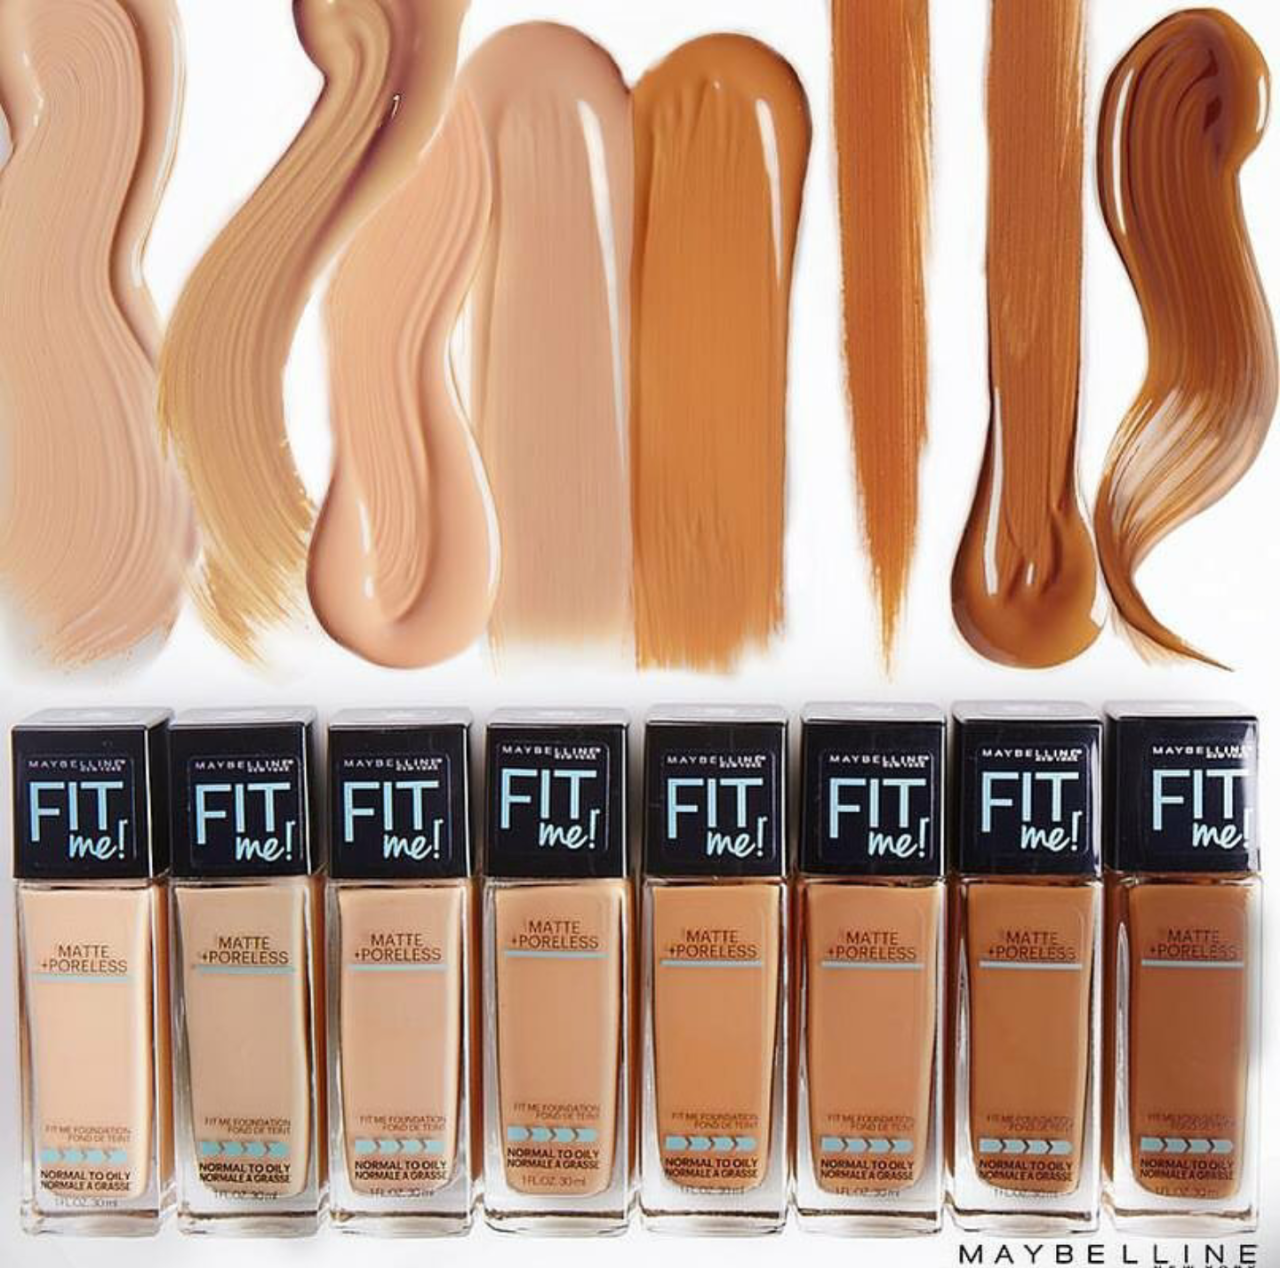 20+ Maybelline fit me fondotinta swatches ideas in 2021